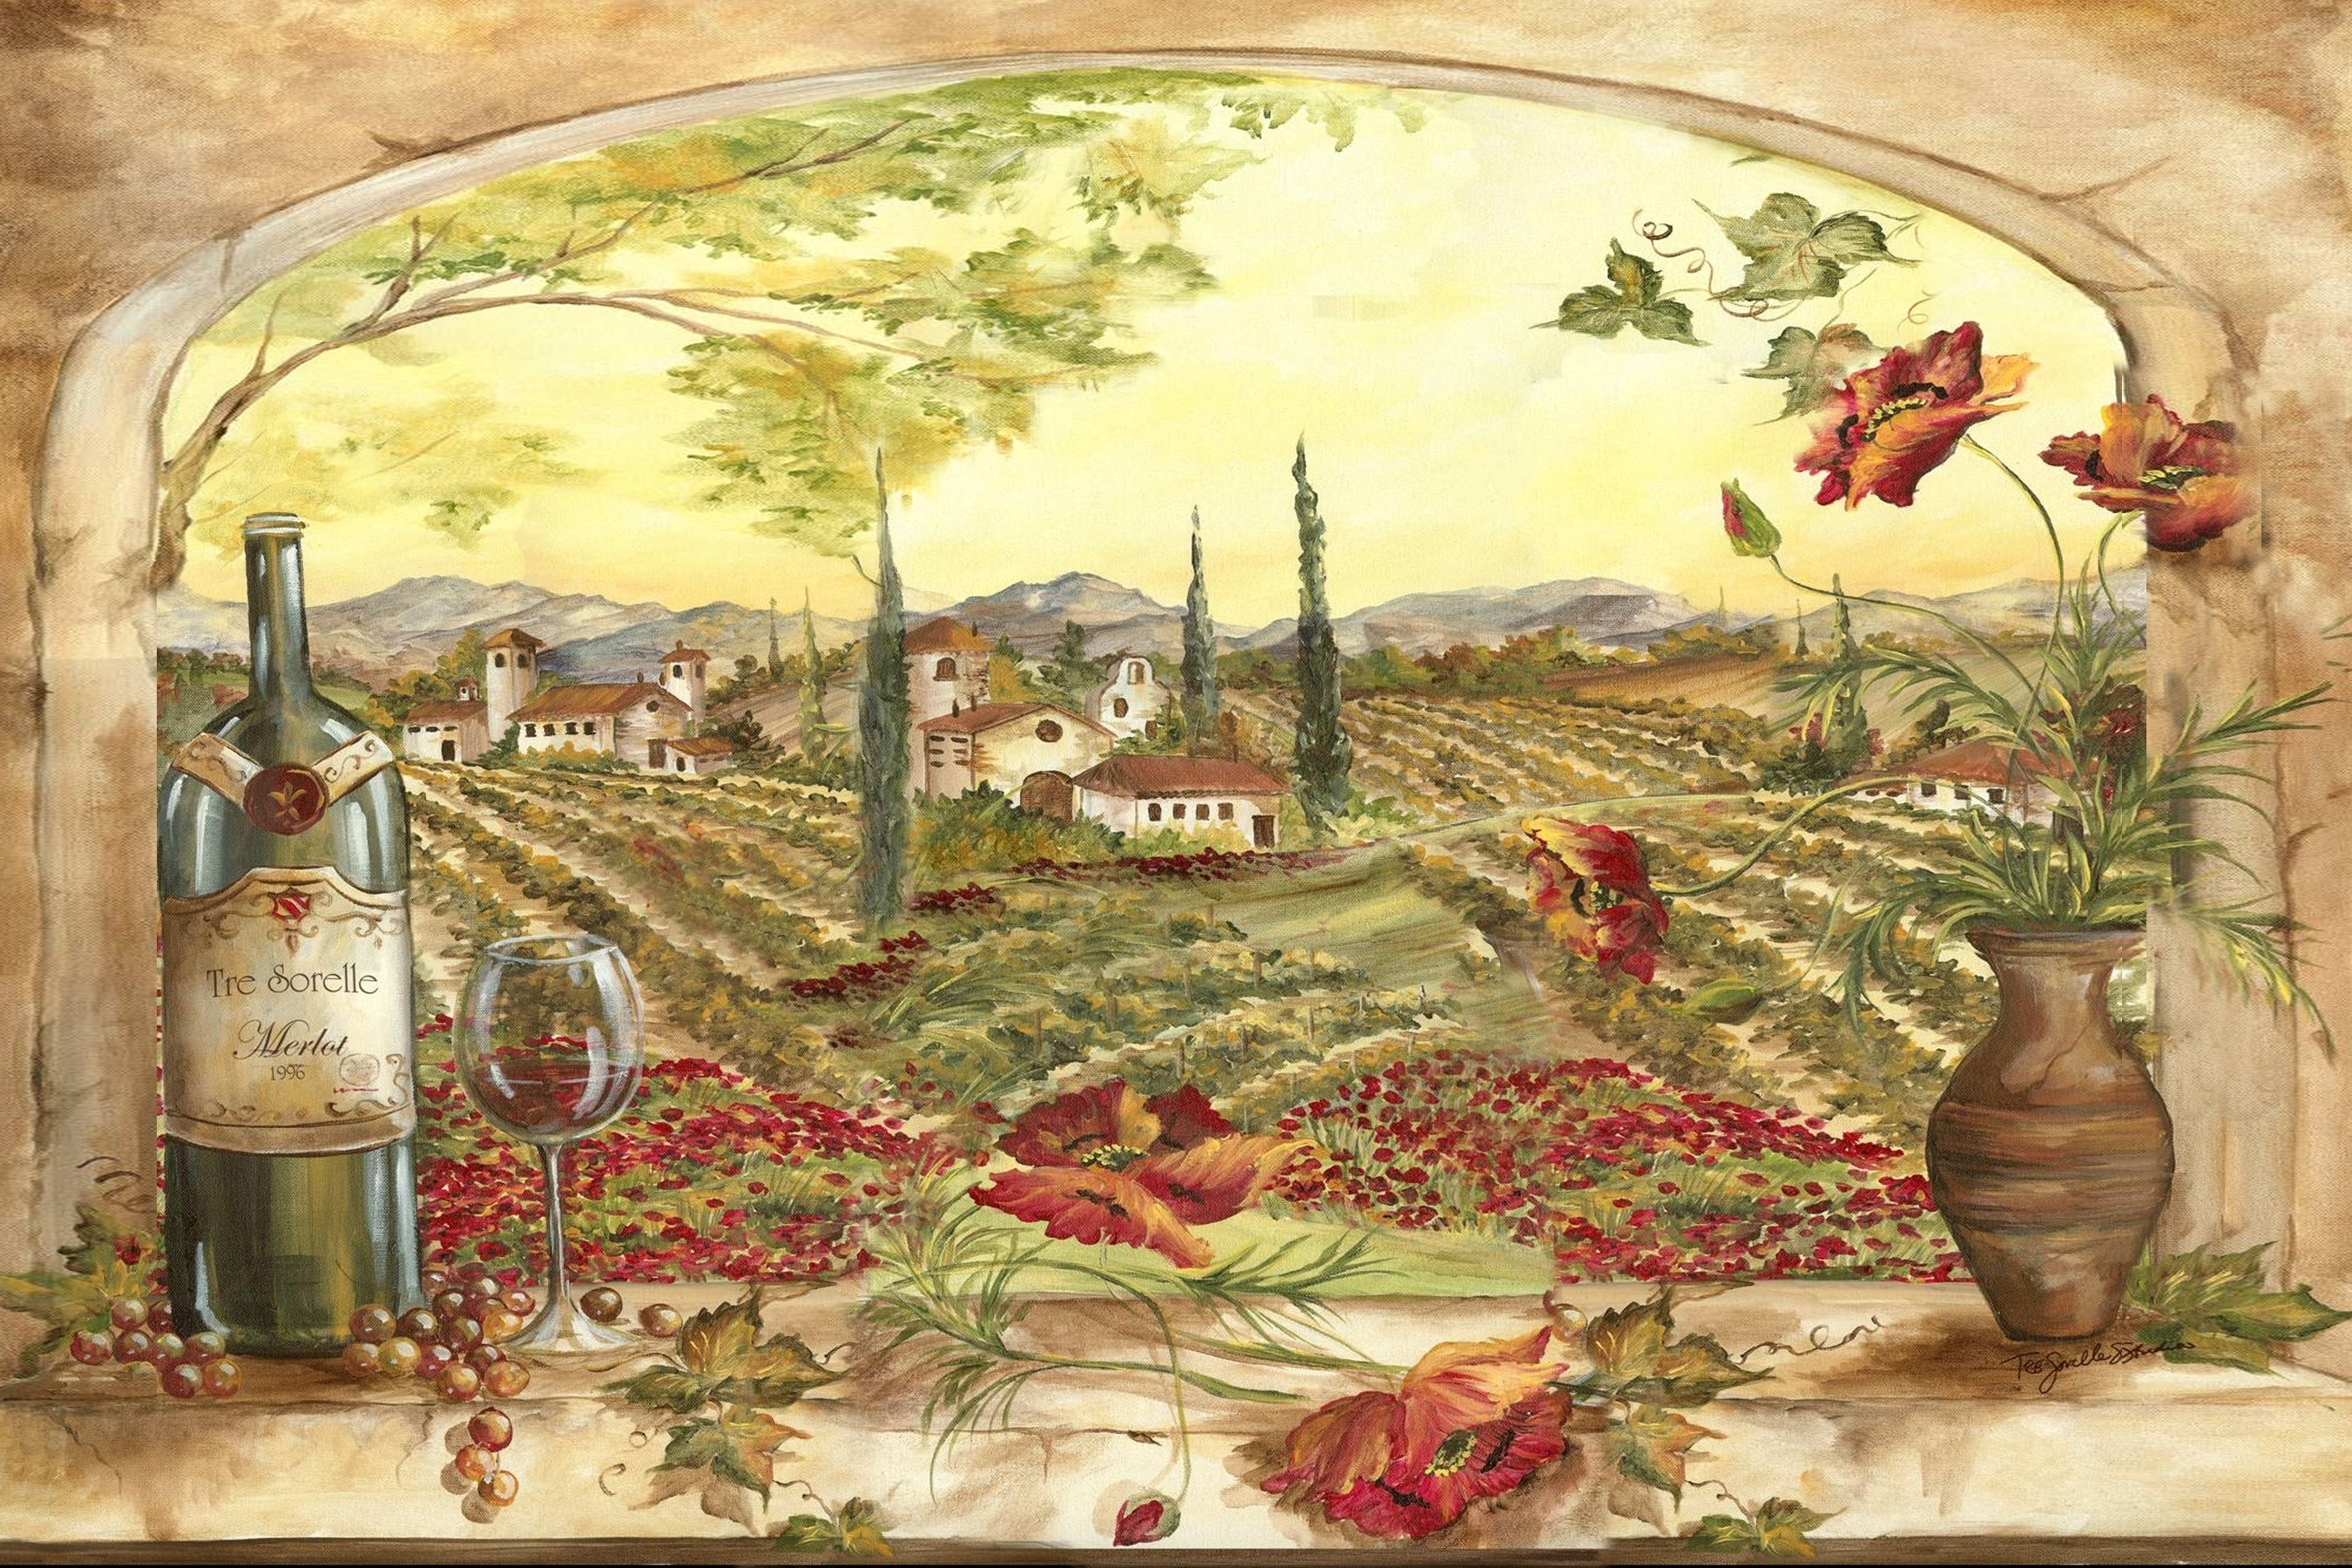 Tuscan Kitchen Wall Art World Of Example, Tuscany Kitchen Wall Art With Regard To Current Tuscan Wall Art (View 14 of 20)